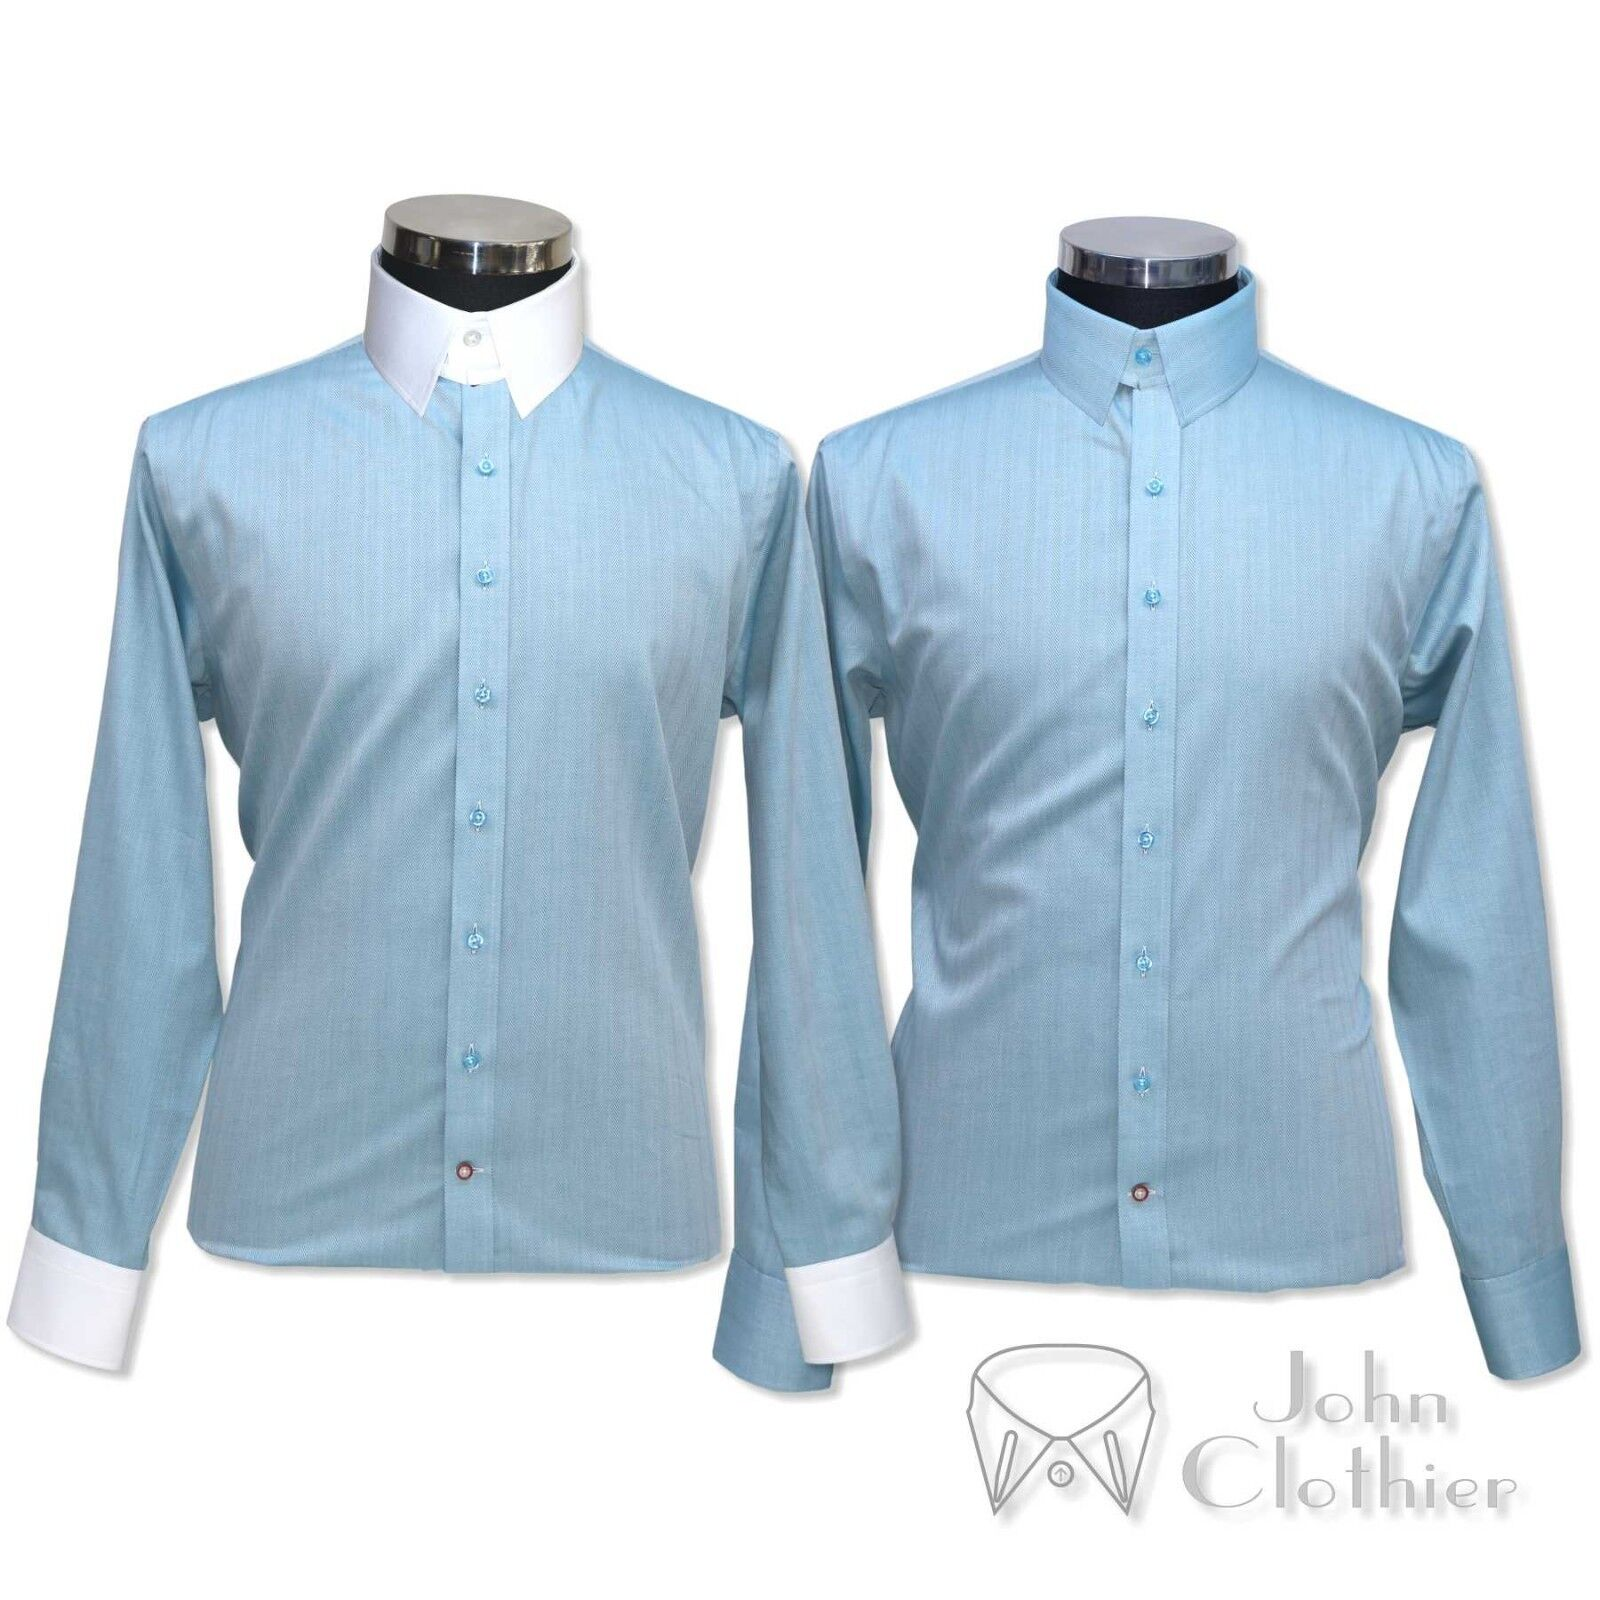 Tab collar  Herren Banker Cotton shirt Sea Blau Herringbone Loop James Bond Gents